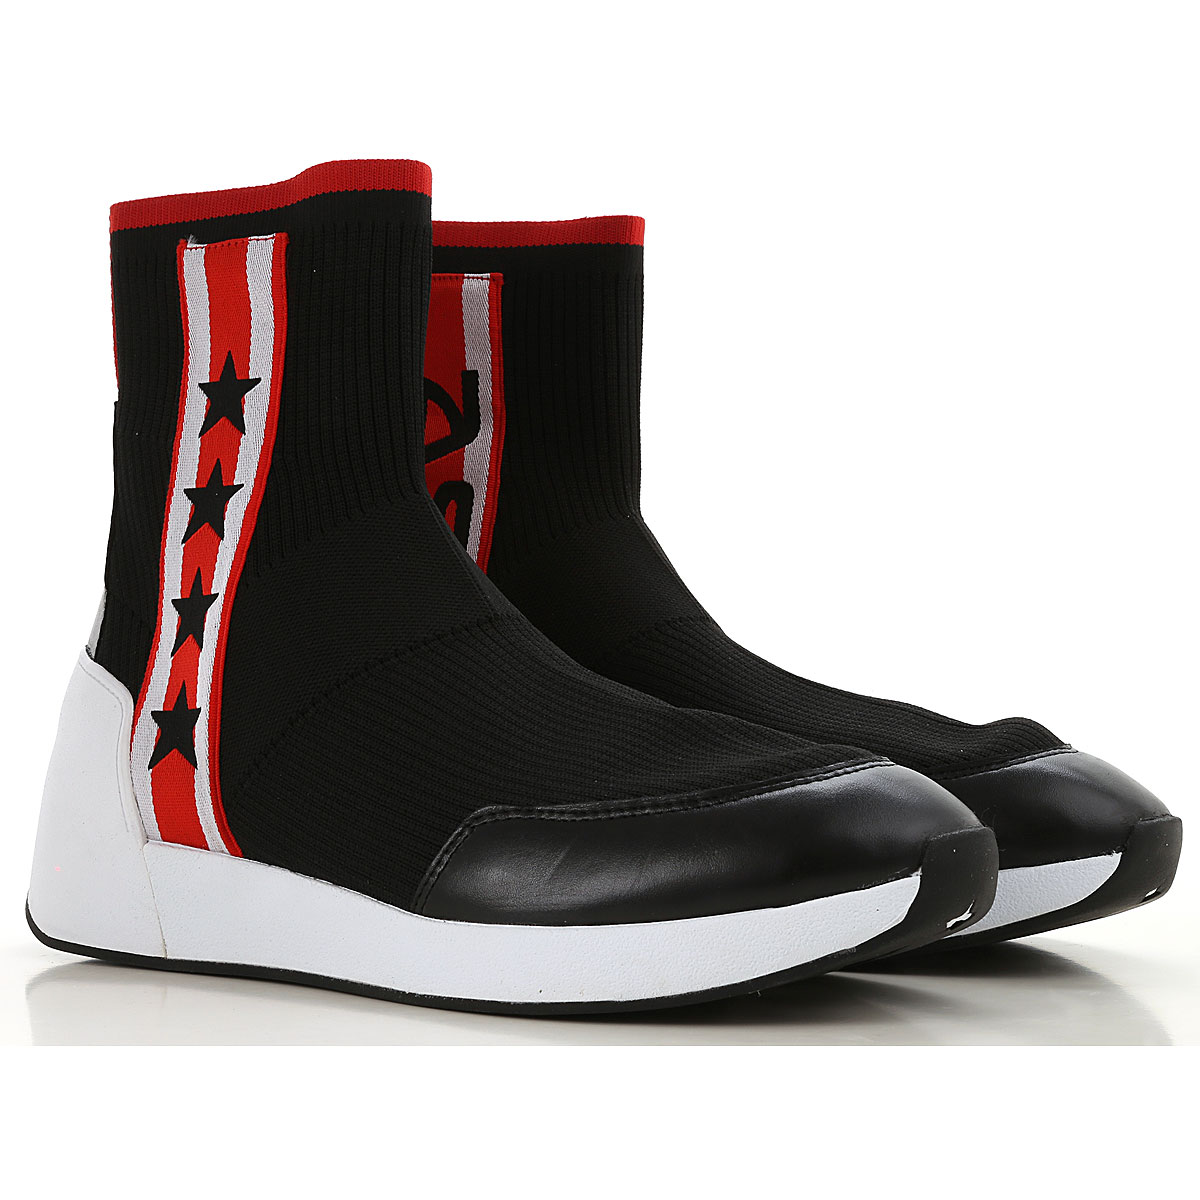 Image of Ash Boots for Men, Booties, Black, Elastic Fabric, 2017, 10 10.5 11.5 7.5 8 9